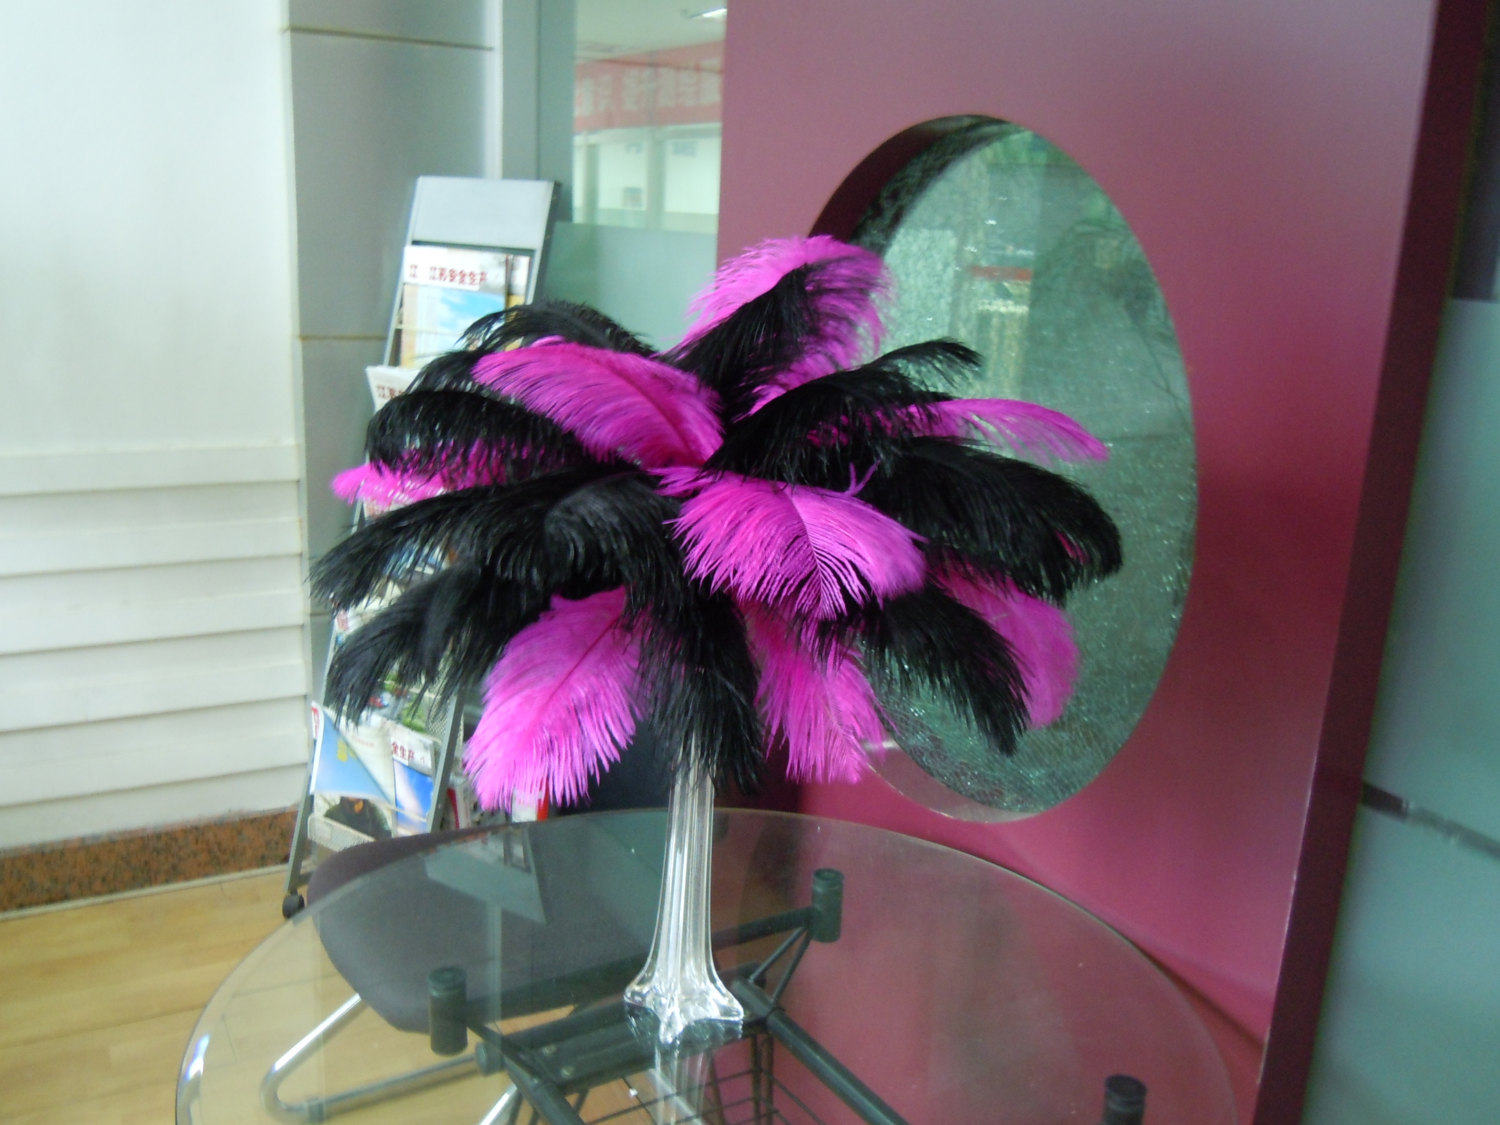 FREE SHIPPINHG 100pcs 12-14inch wholesale Ostrich Feathes centerpiece,turquoise ostrich feathers,purple ostrich feathers,white ostrich feathers,pink ostrich feathers